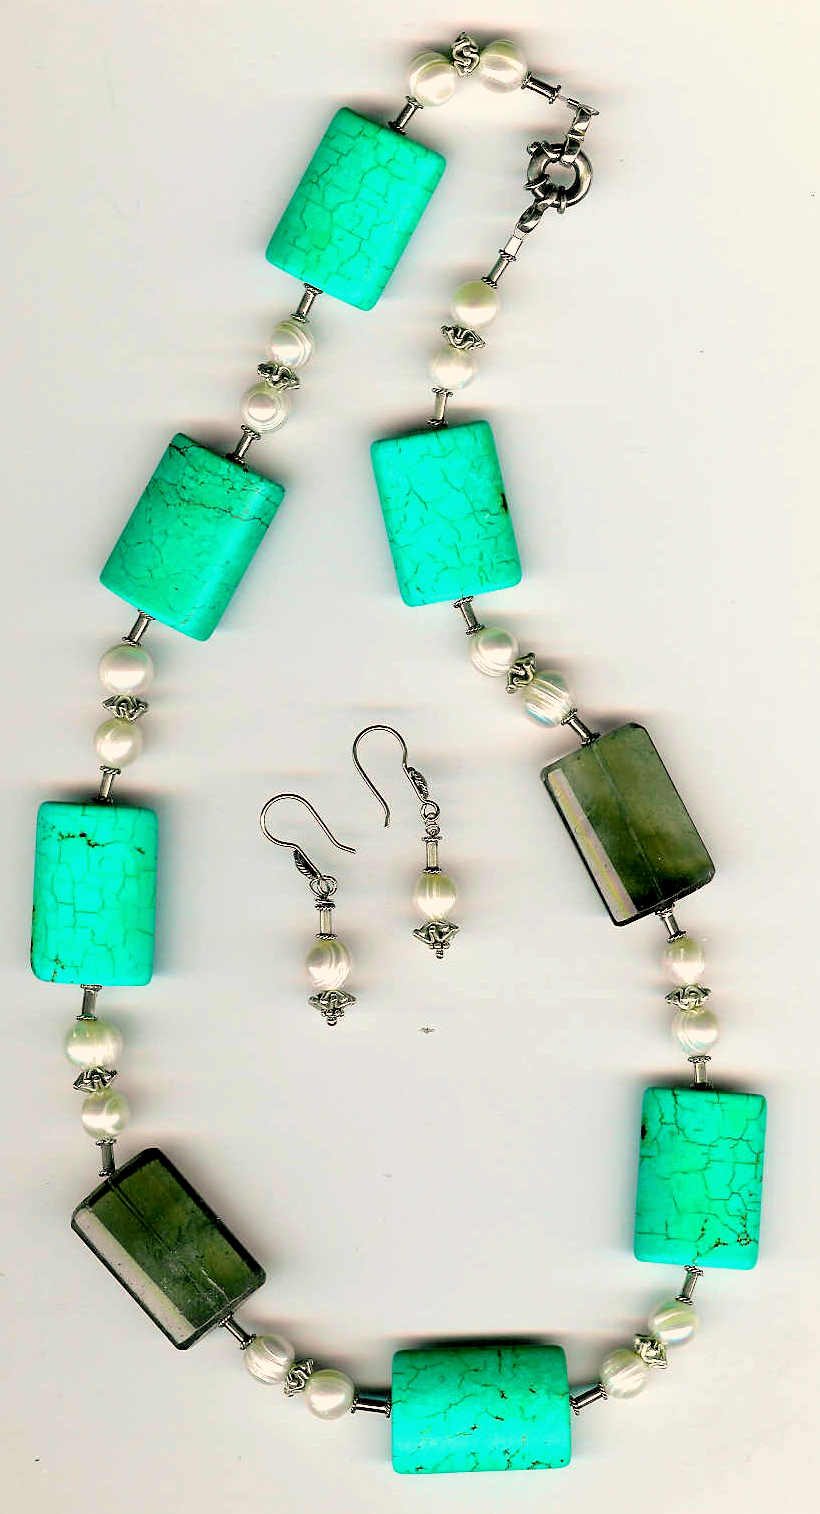 30. Turquoise, Topaz, Freshwater pearls with Thai and Bali Sterling Silver + Earrings